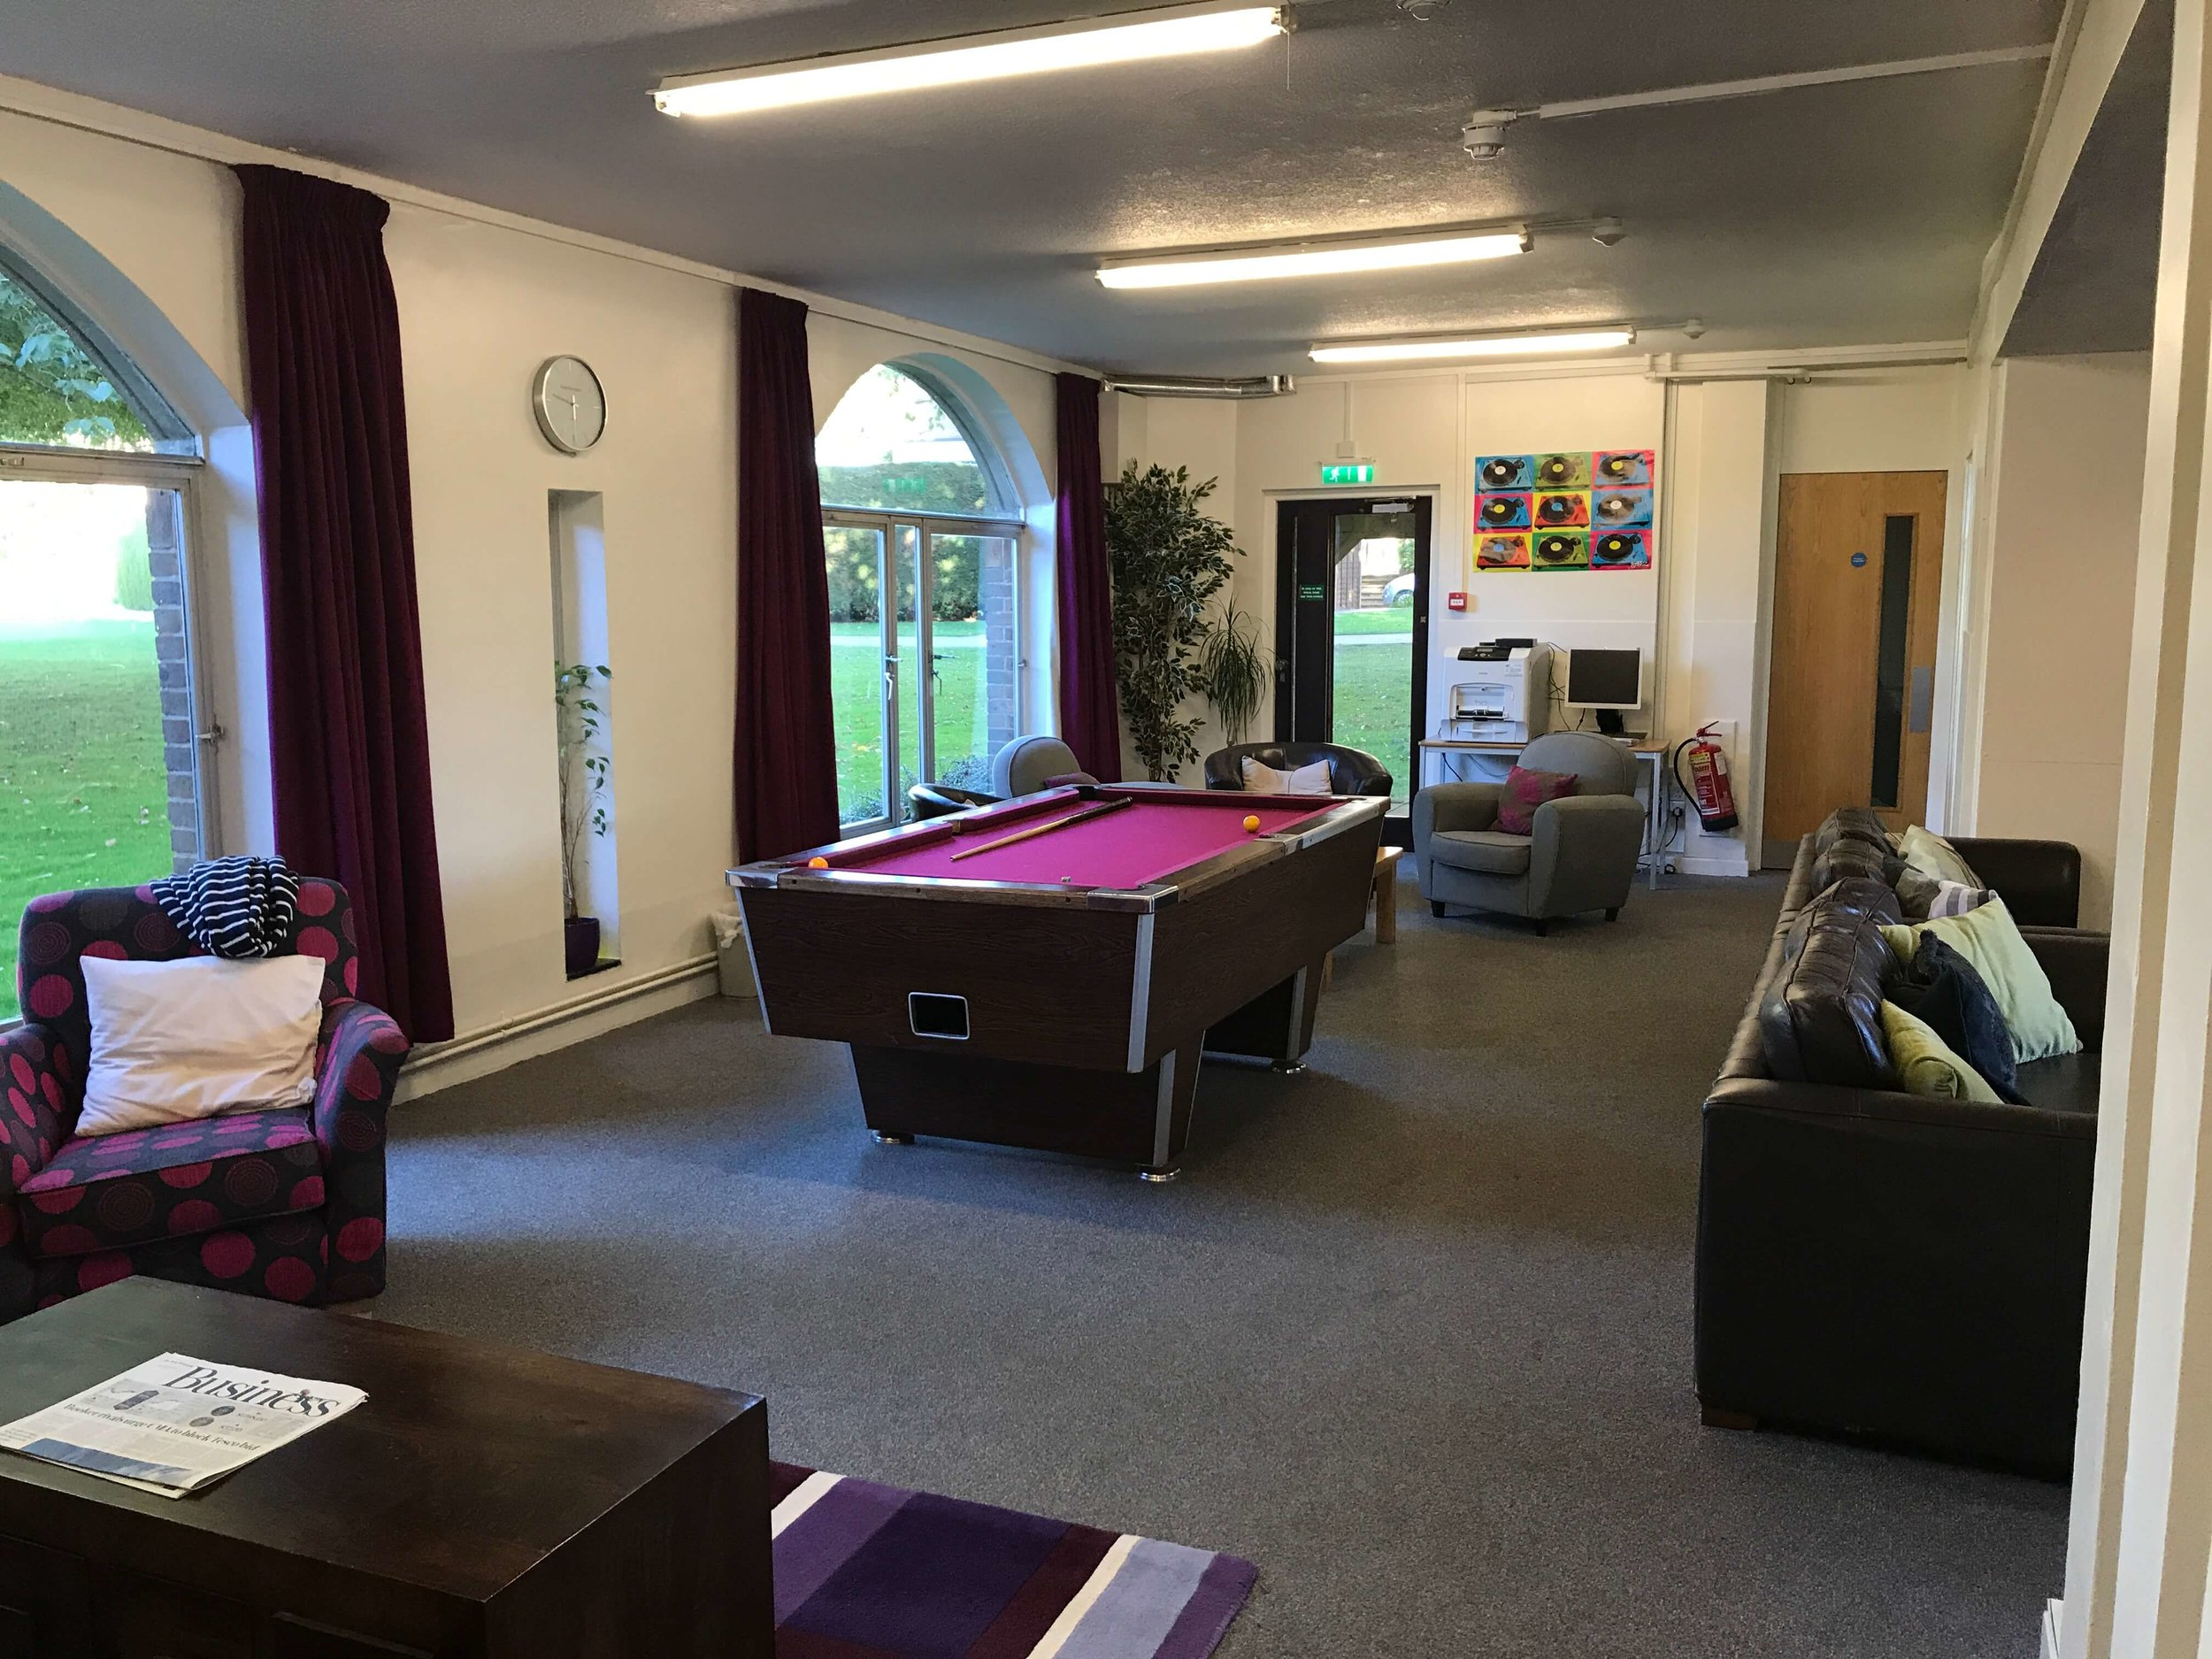 Pageites - Common Room 2.JPG